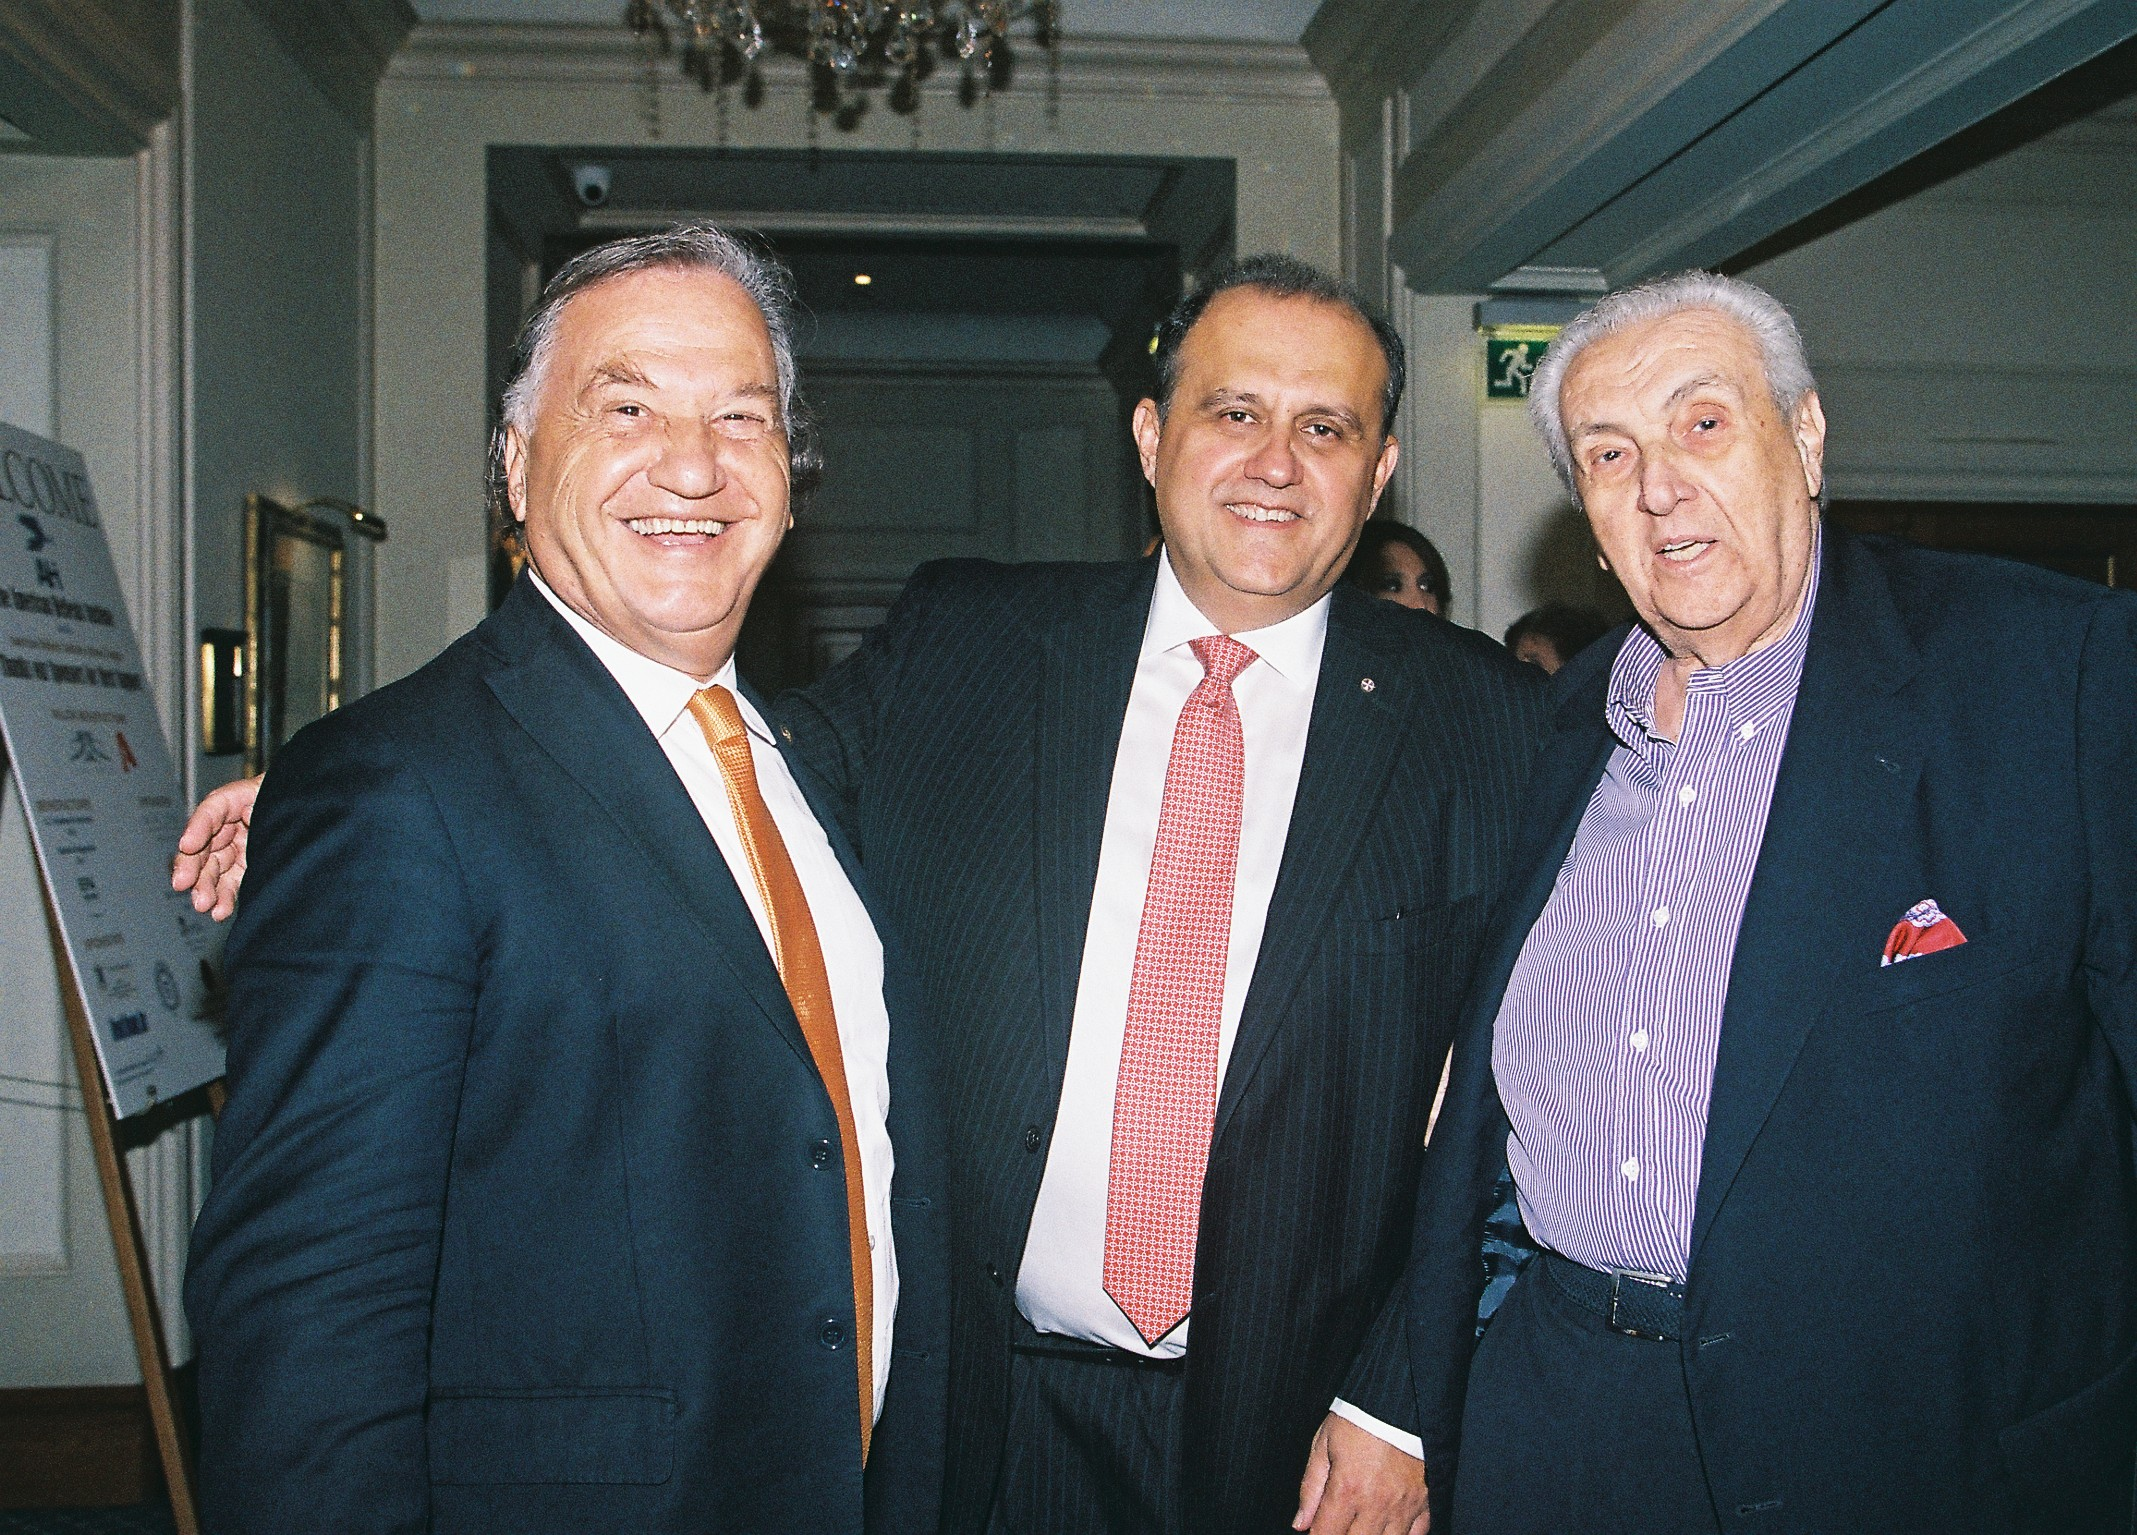 George Mermelas, Nick Larigakis, and Dimitri Contominas.